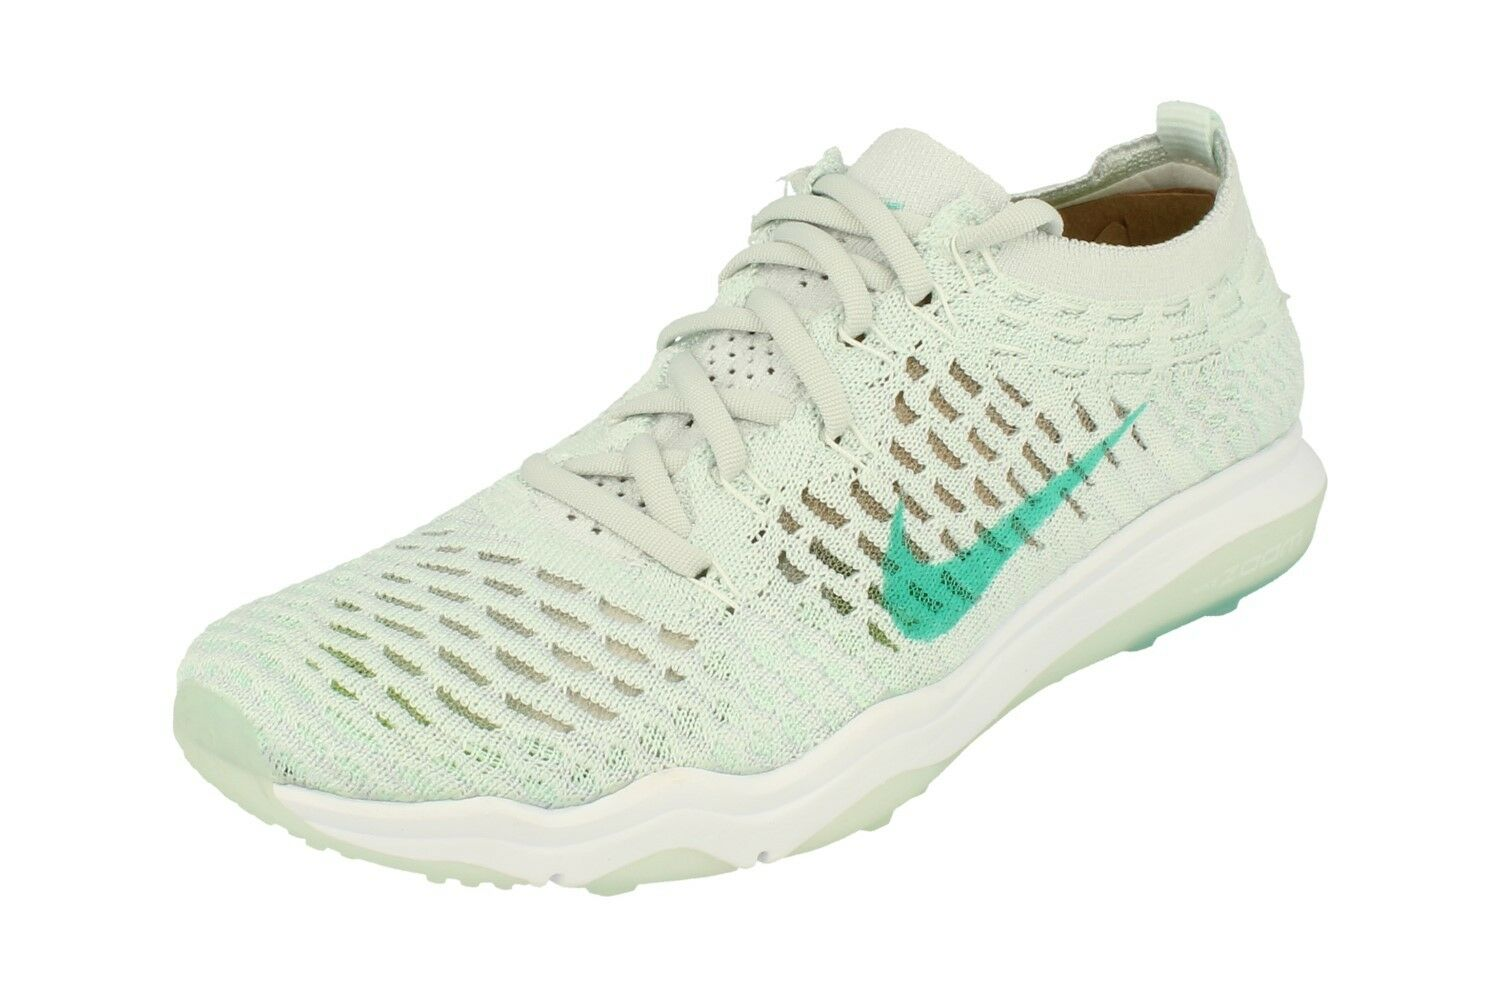 Nike Womens Air Zoom Fearless Flyknit Running Trainers 850426 Sneakers 104